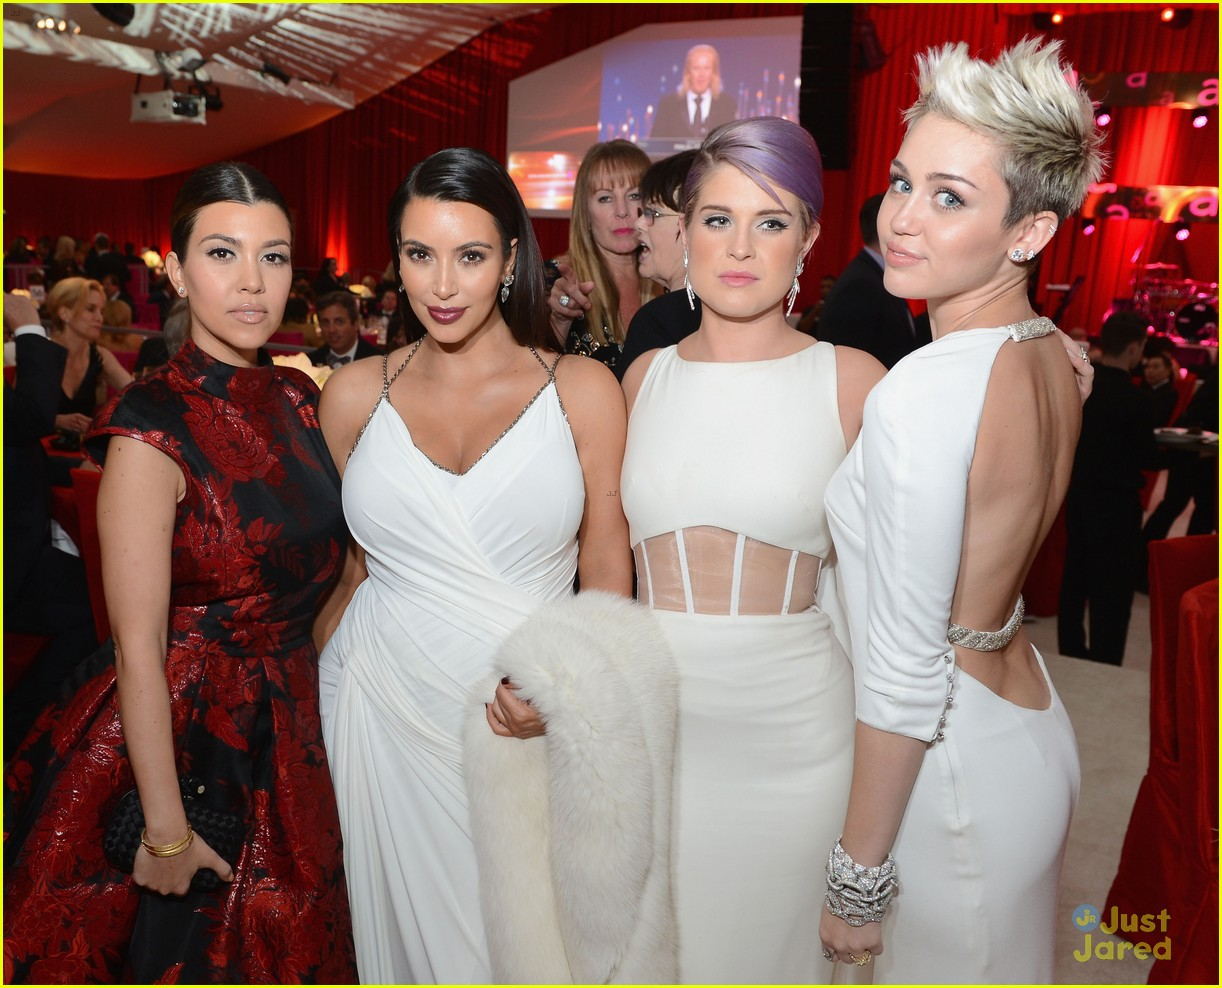 http://2.bp.blogspot.com/-sgK_mWpbZ3k/US1ly-05QDI/AAAAAAAAJ6Y/7738e4UGV2c/s1600/kourtney-kim-kardashian-kelly-osbourne-miley-cyrus-oscars-party-2013.jpg